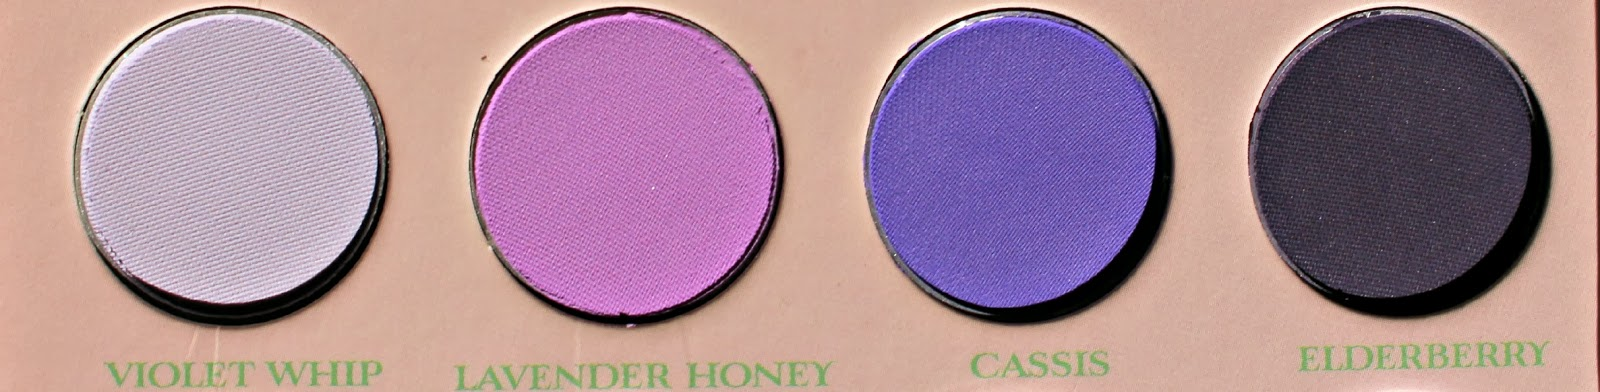 swatchfest, creme de couture palette, creme de couture, sigma, sigma beauty, eyeshadow palette, macaron inspired, matte shadows, candy colored, creme de couture